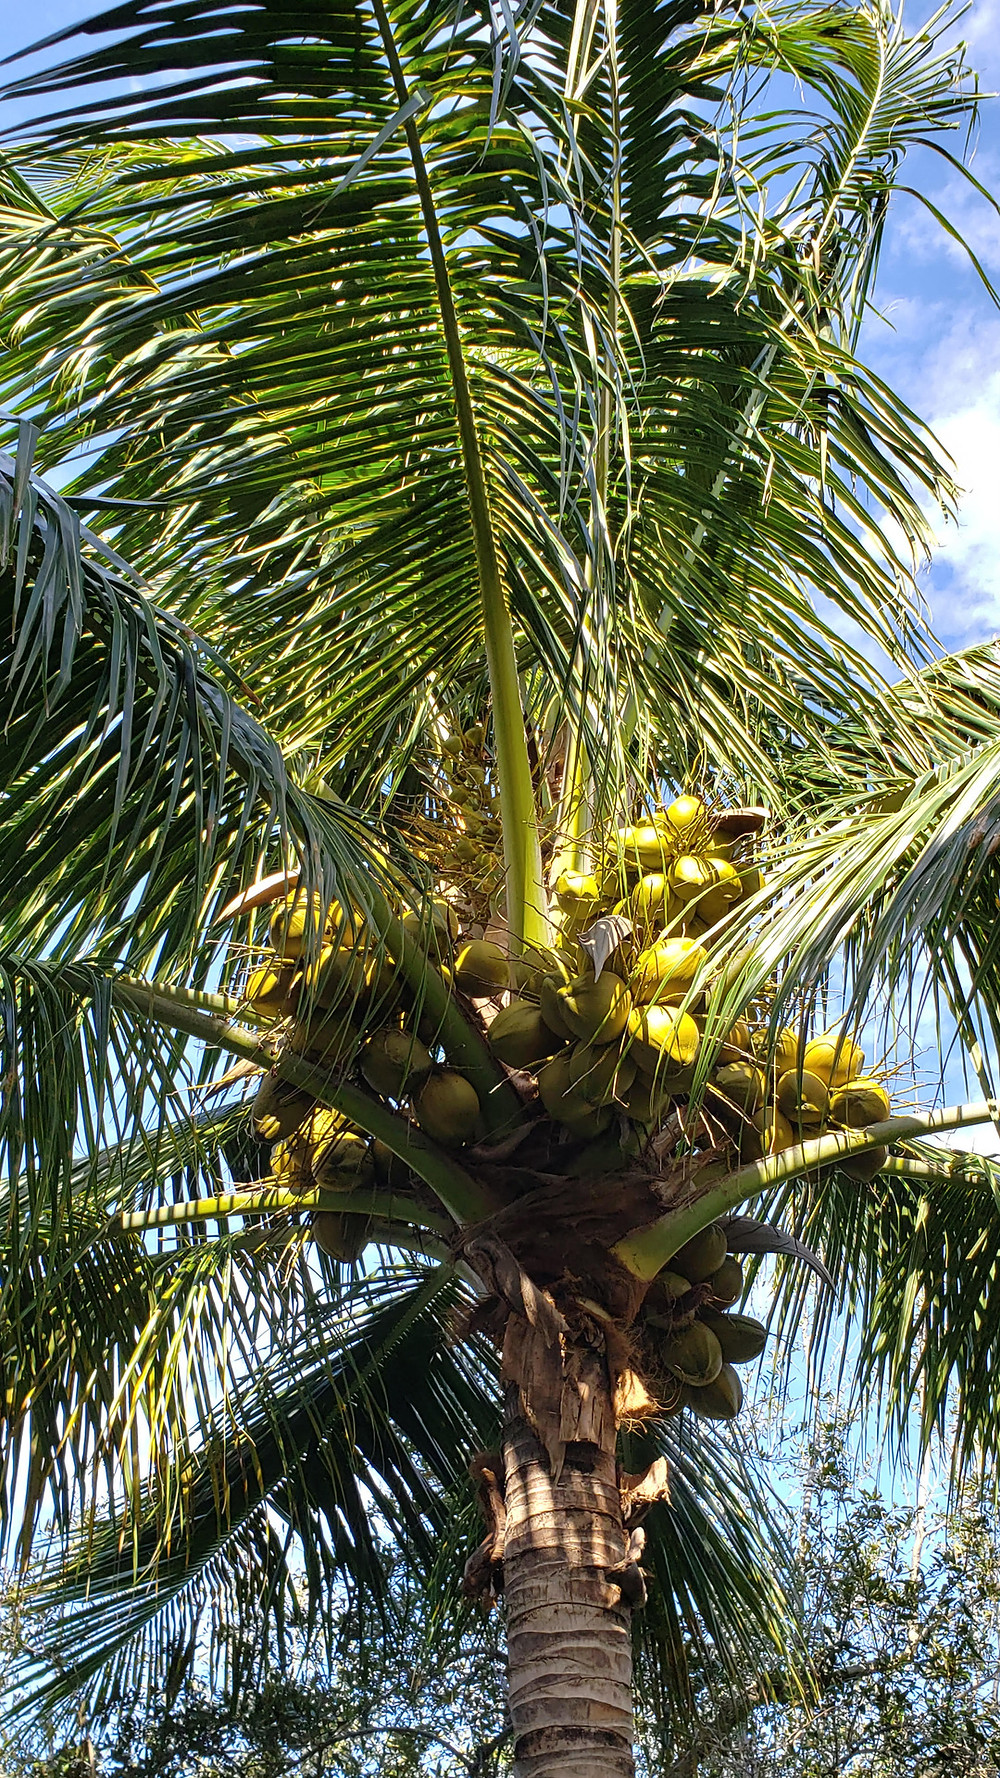 The coconut plam (cocos nucifera) has very large, edble seeds which are a food staple in many places world-wide.